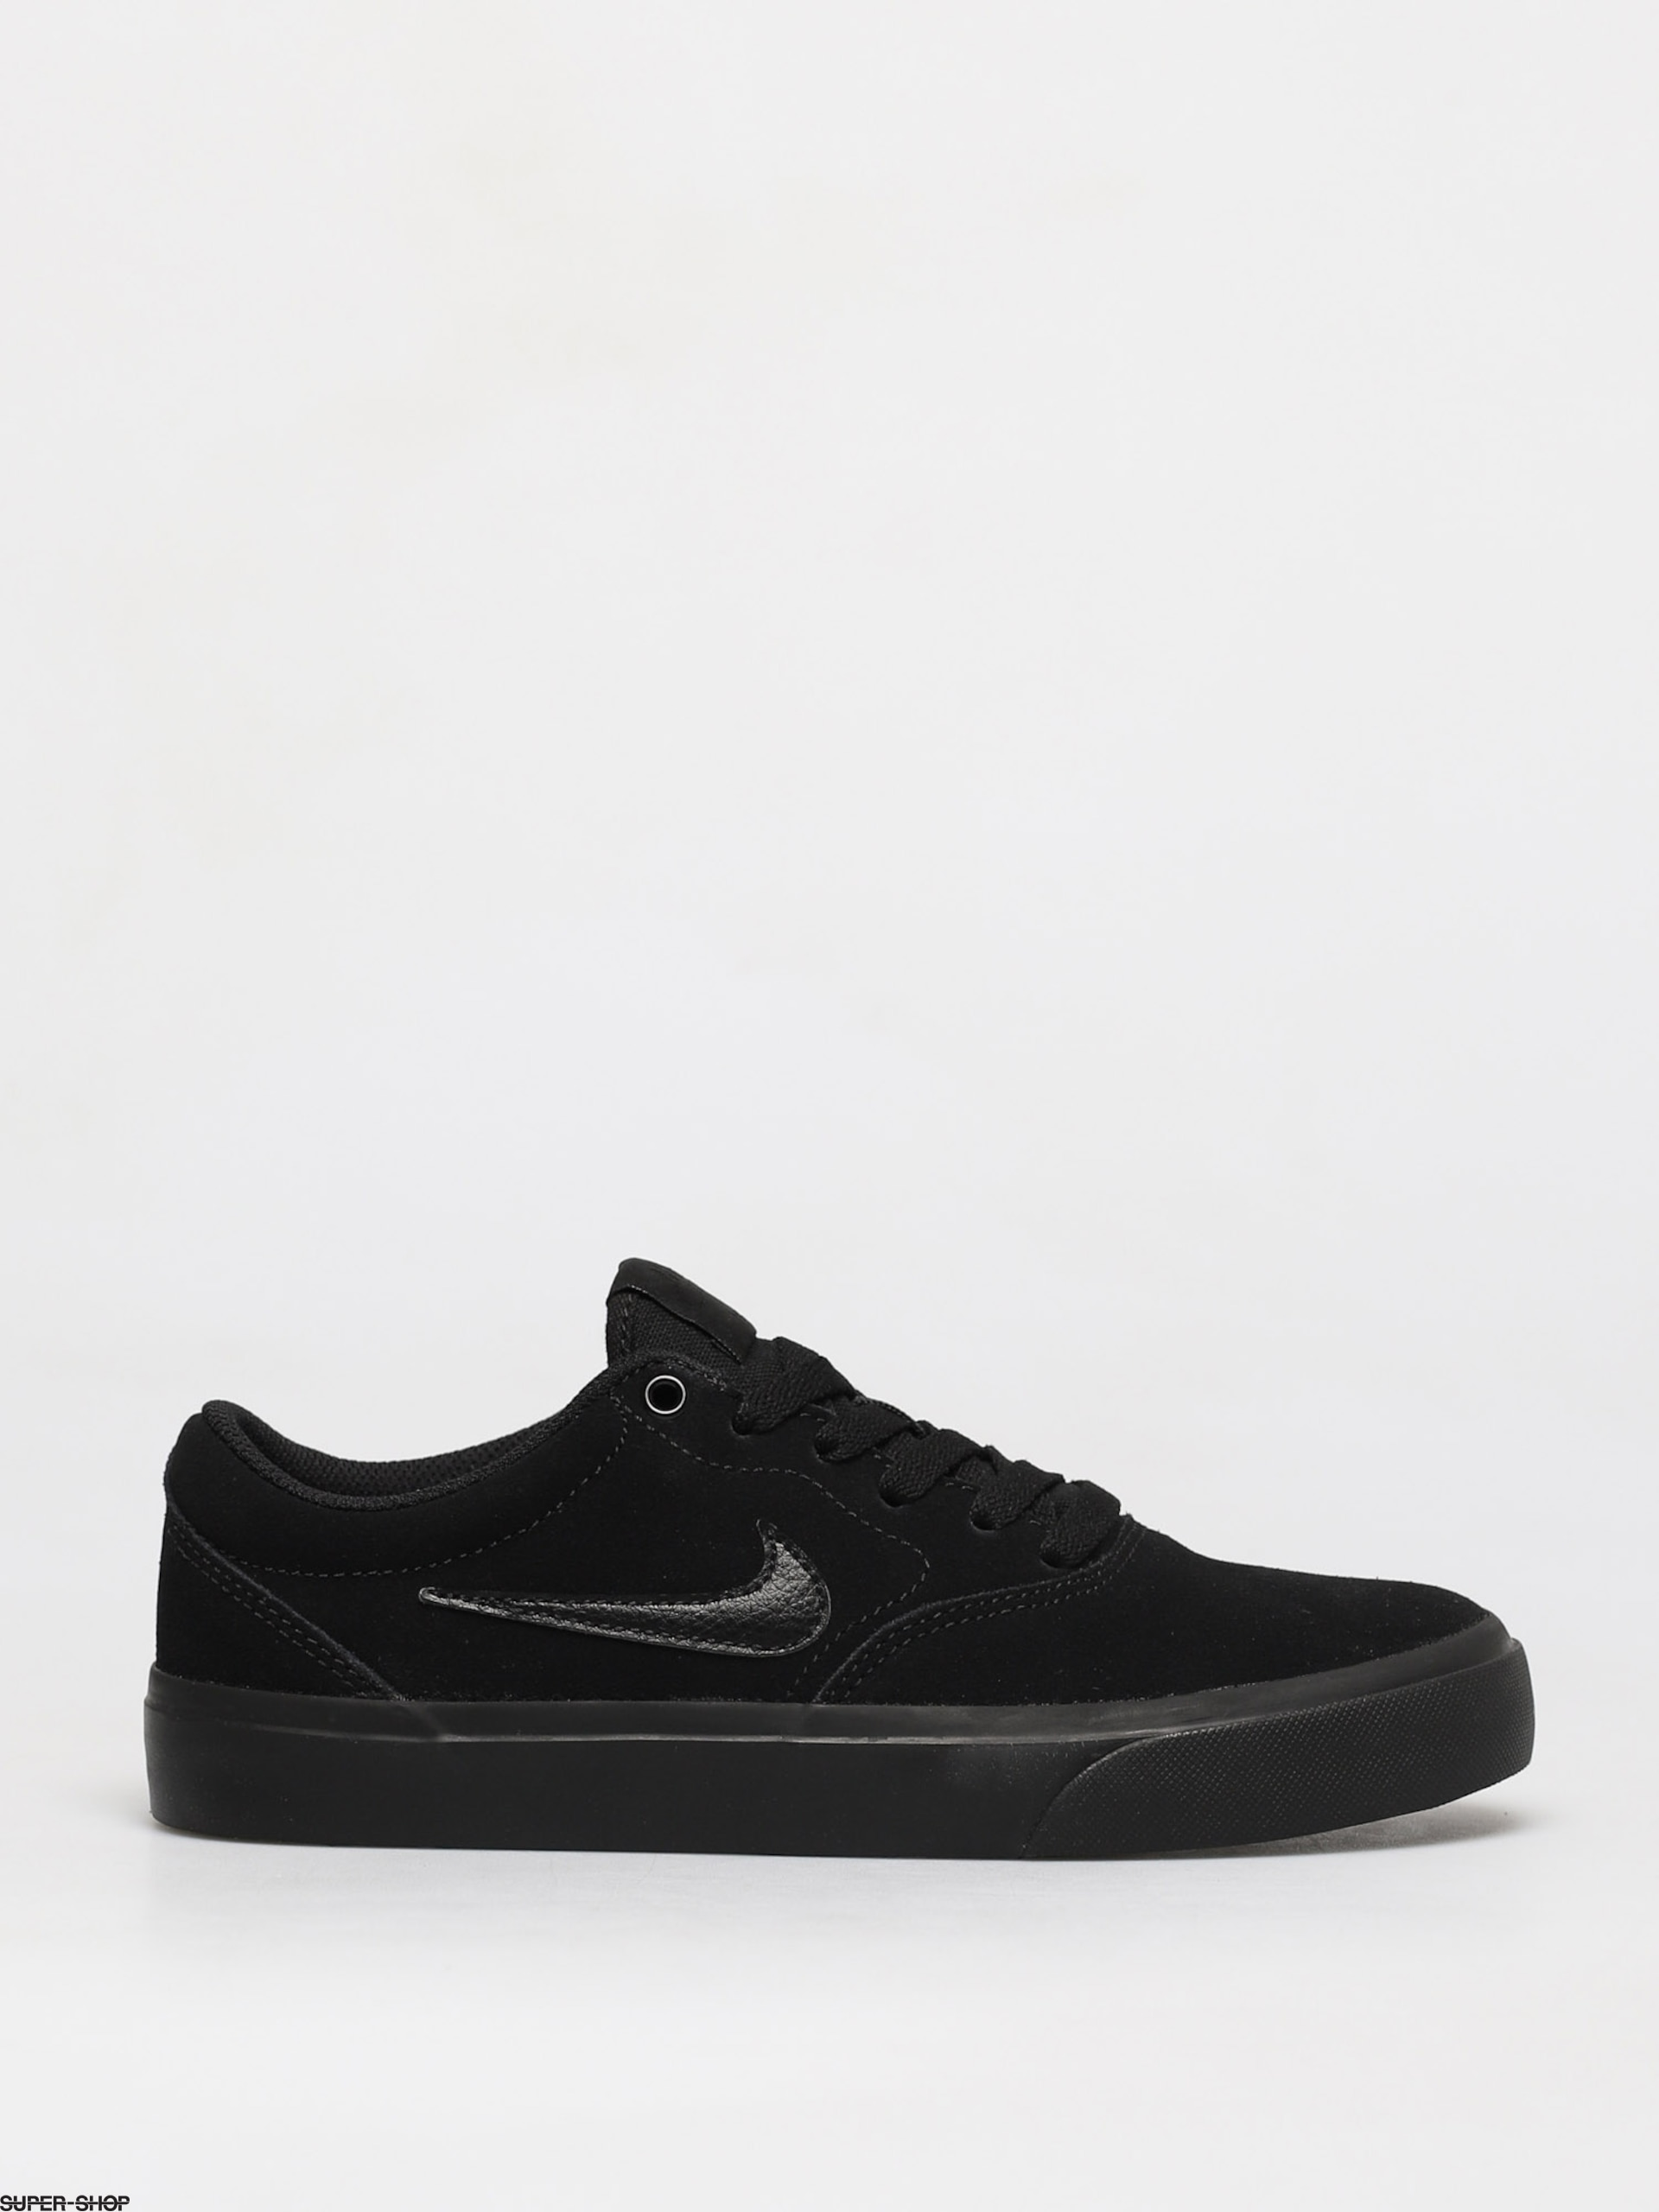 Nike SB Charge Suede Gs Shoes (black